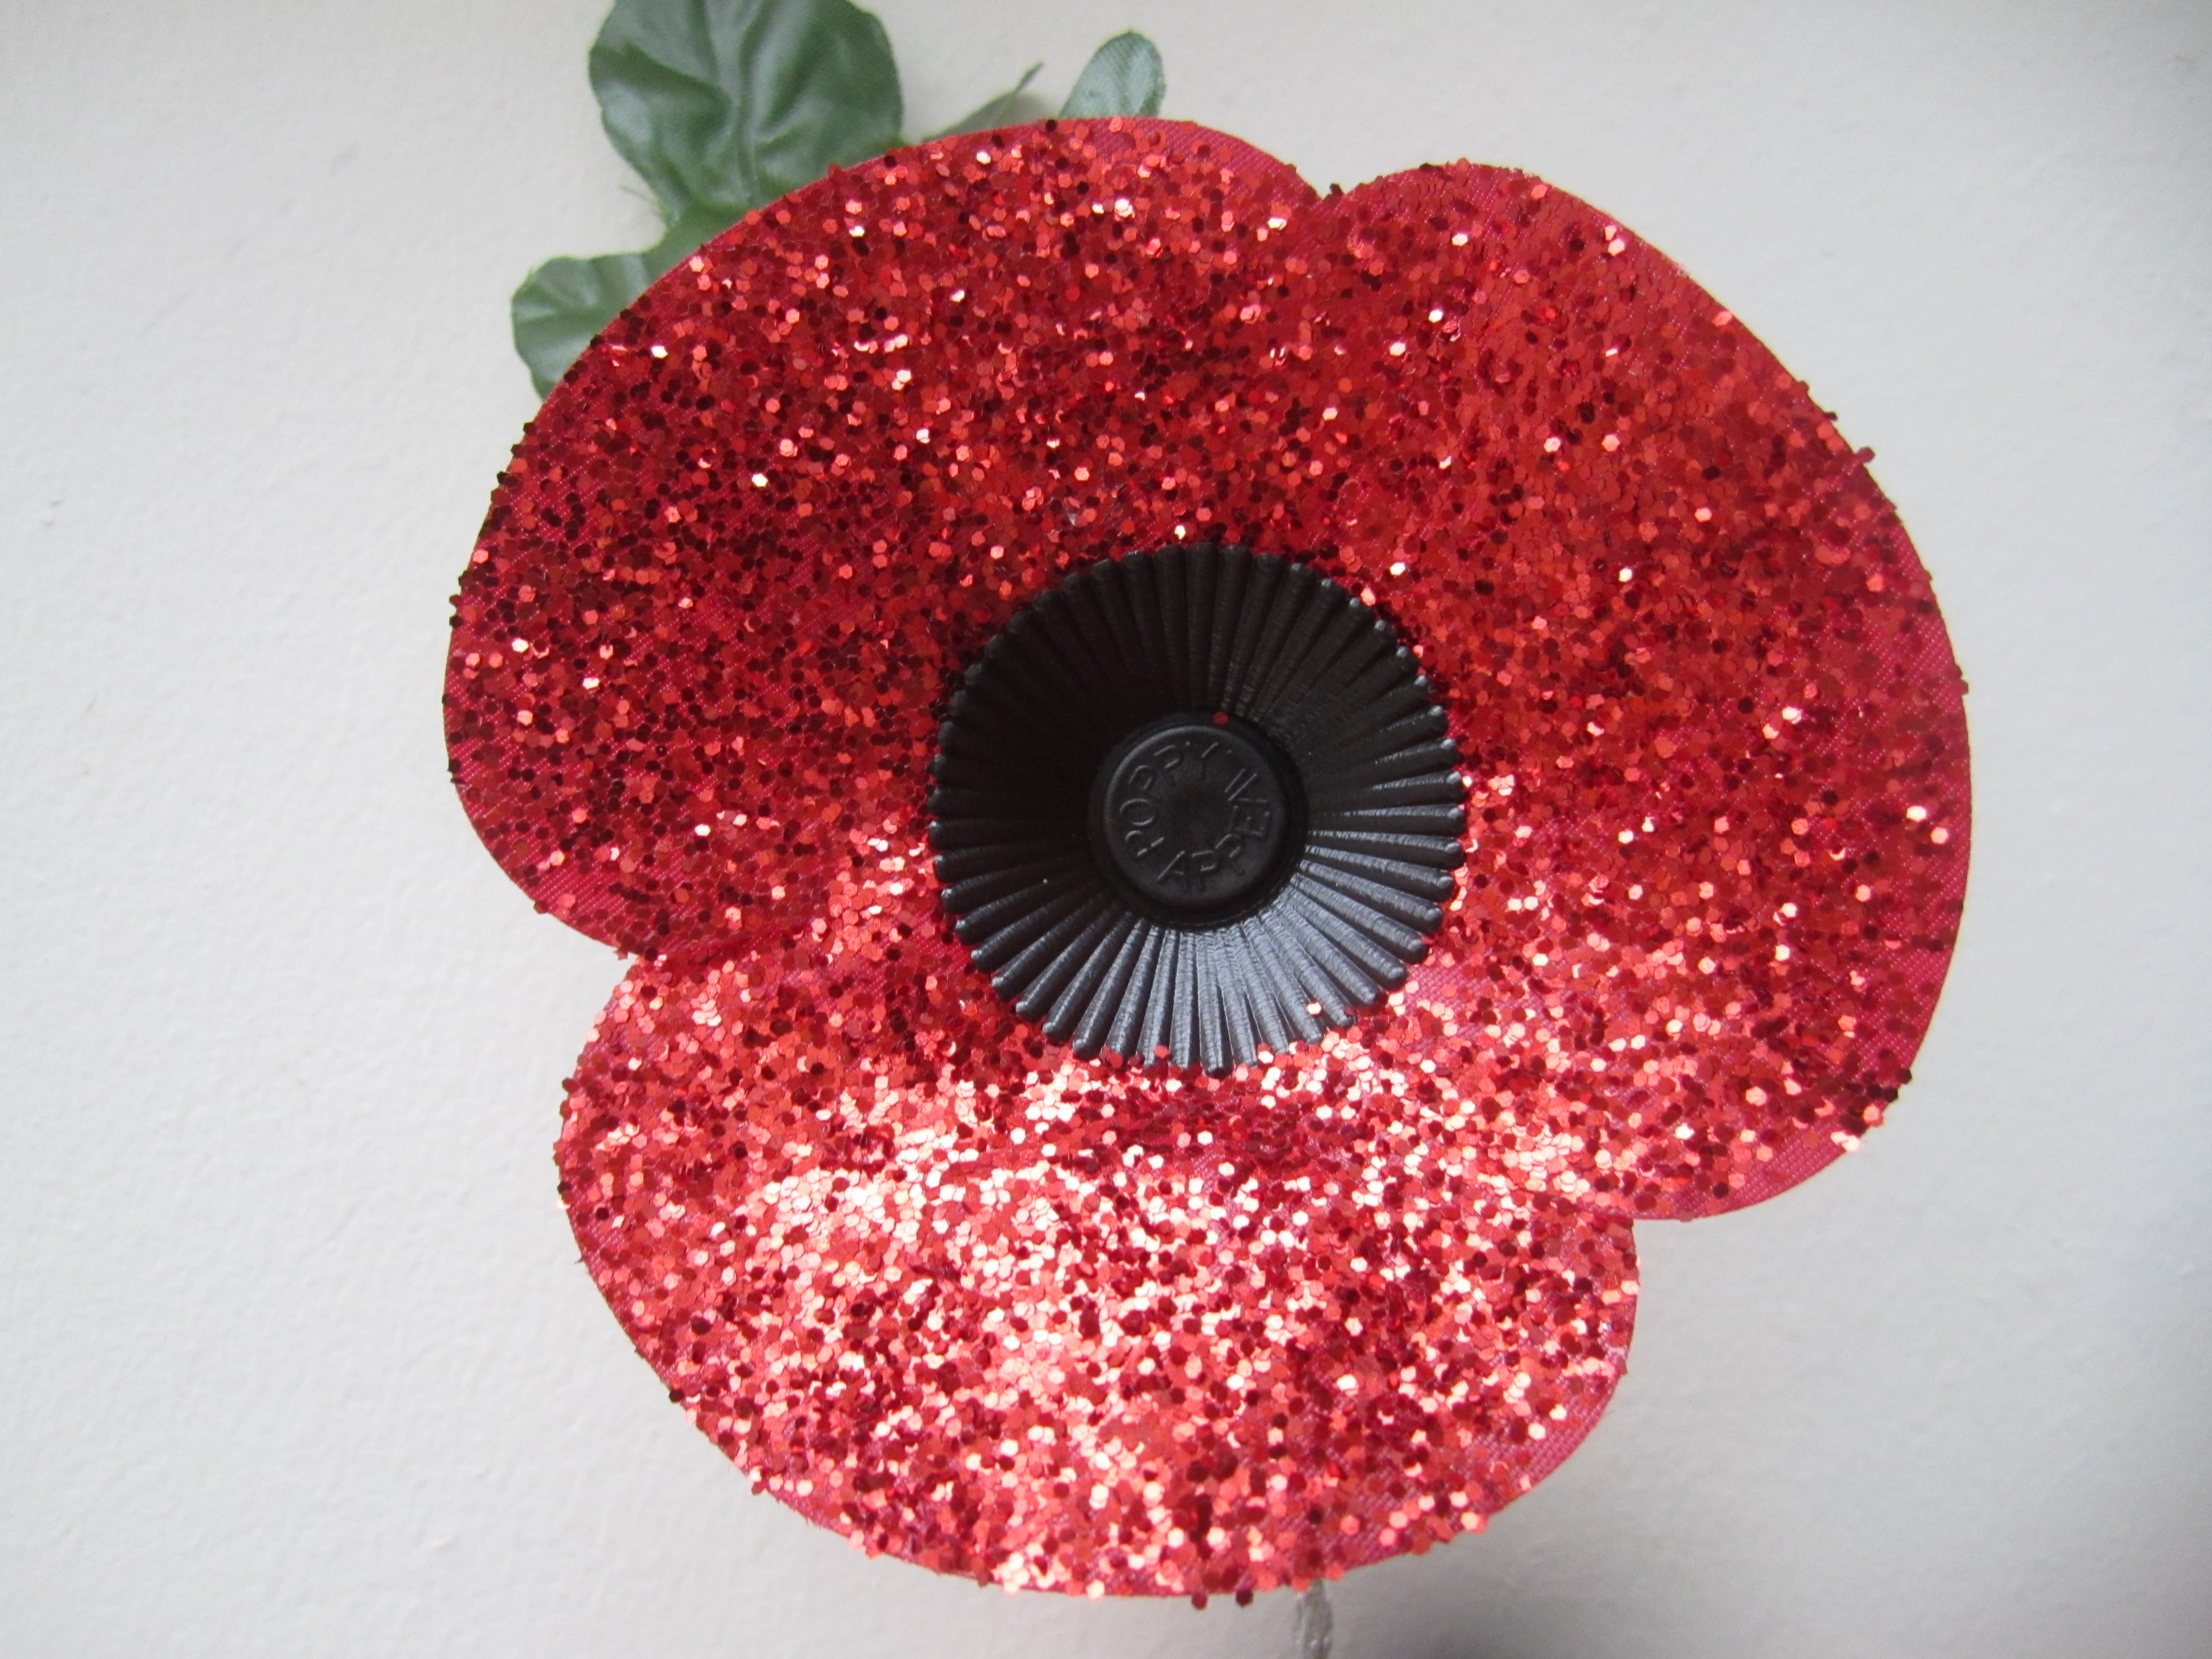 How To Make A Glitter Poppy Sew Make Play